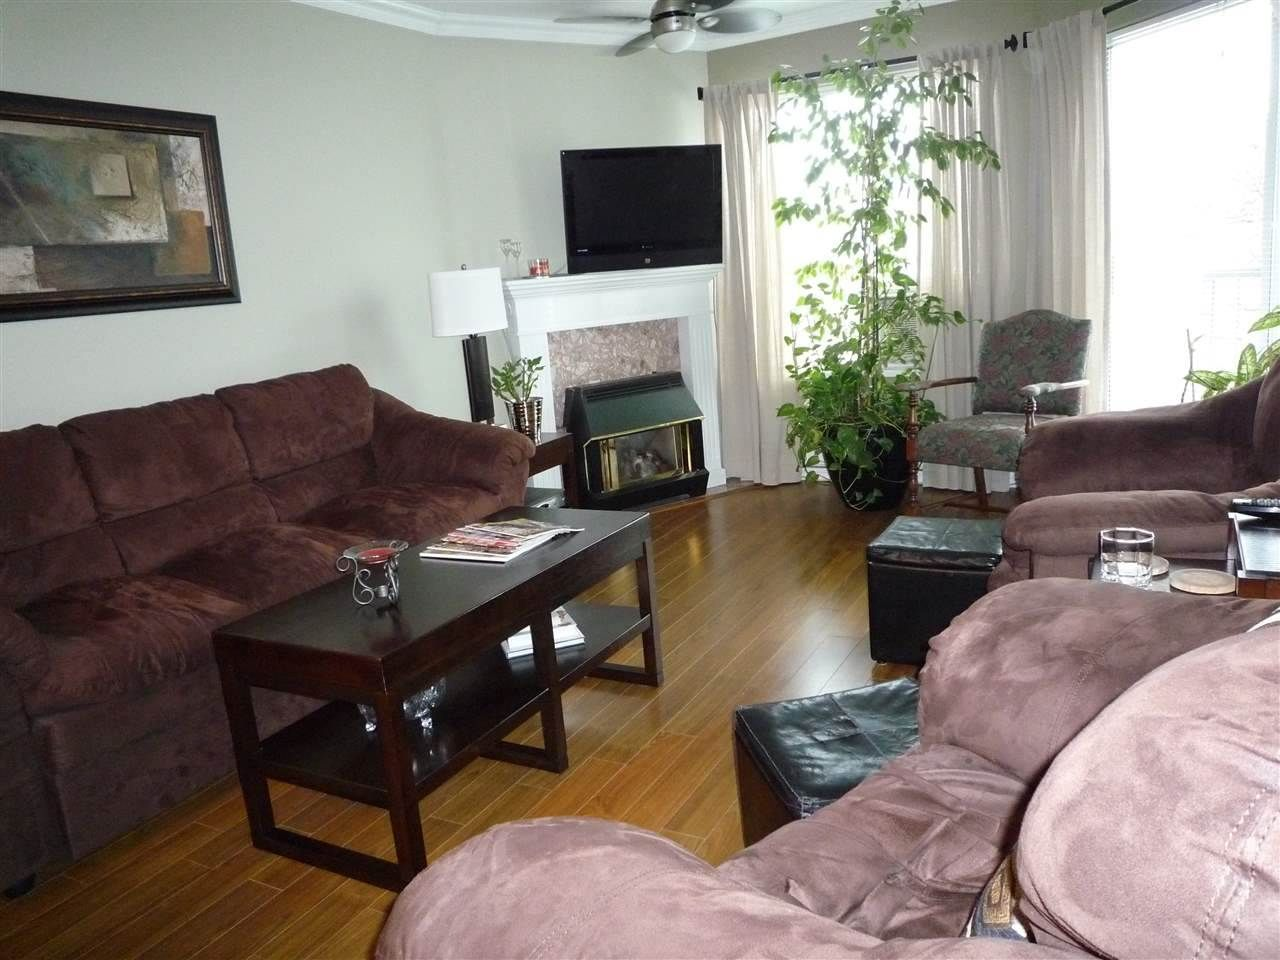 """Photo 4: Photos: 104 9400 COOK Street in Chilliwack: Chilliwack N Yale-Well Condo for sale in """"THE WELLINGTON"""" : MLS®# R2076679"""